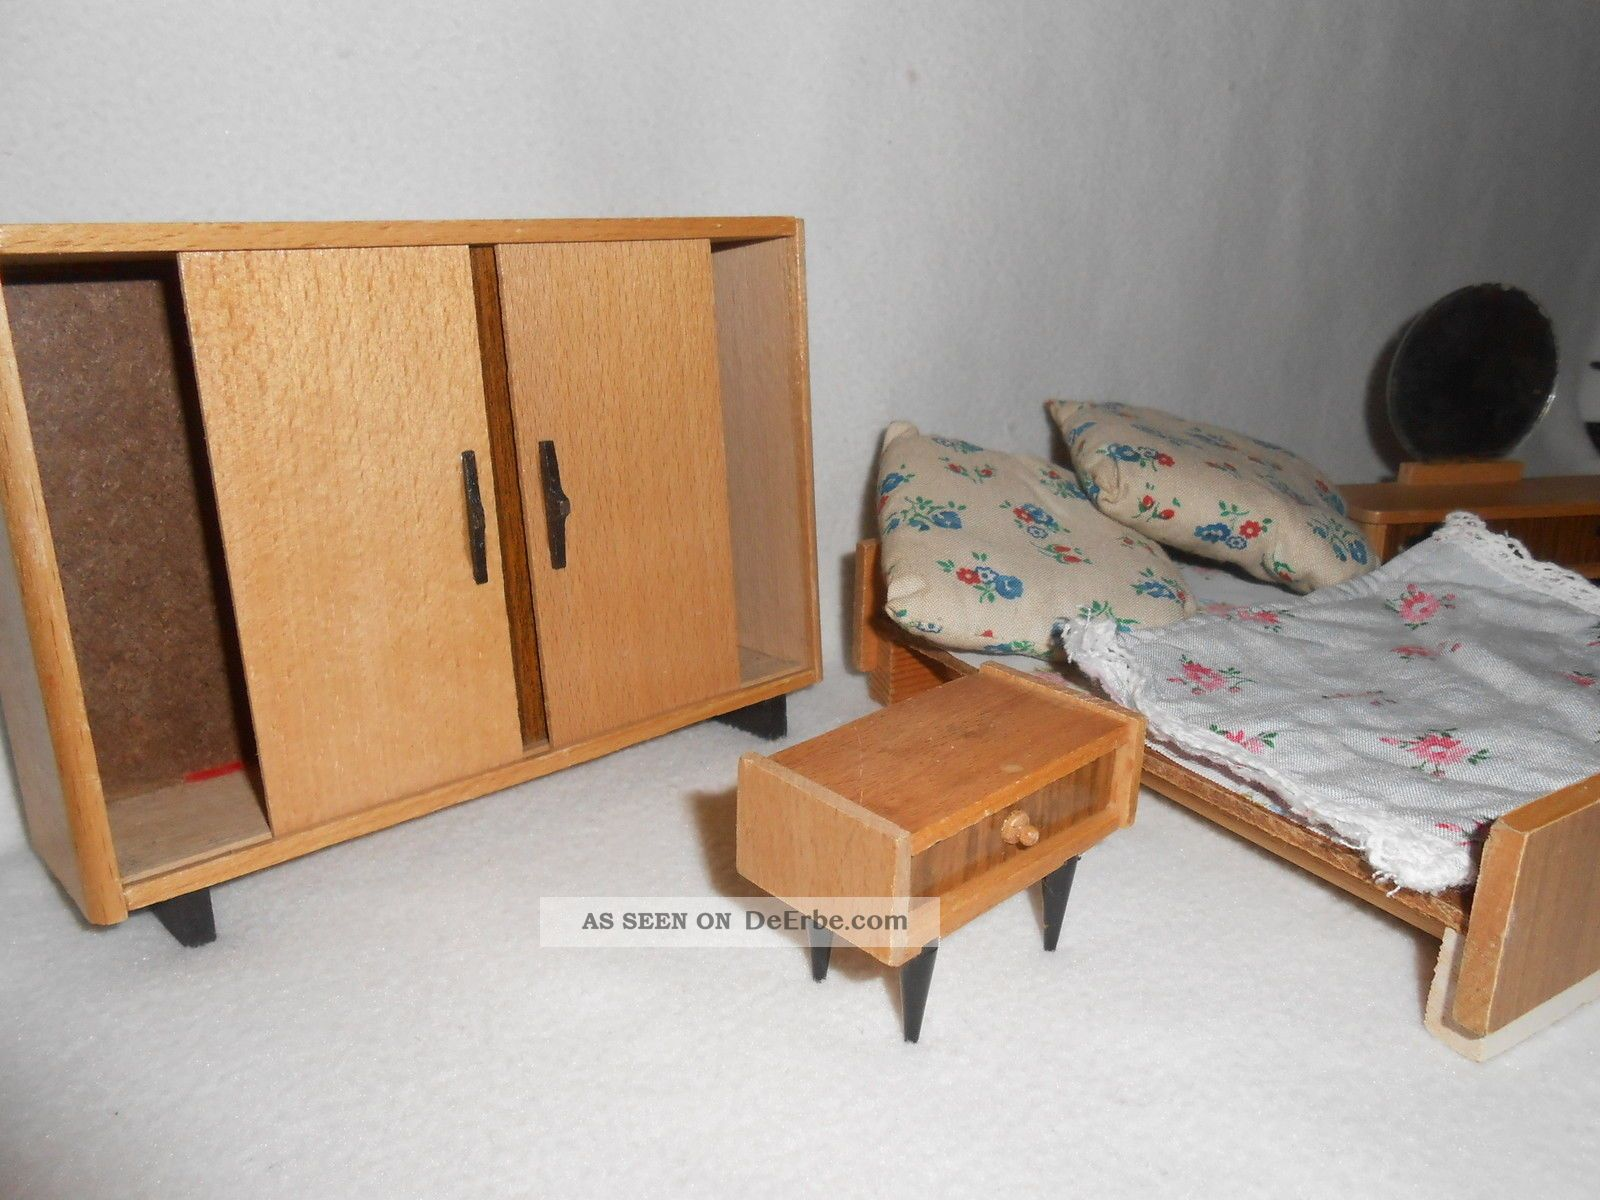 ddr puppenstube komplettes schlafzimmer m bel holz konvolut schrank bett kommode. Black Bedroom Furniture Sets. Home Design Ideas